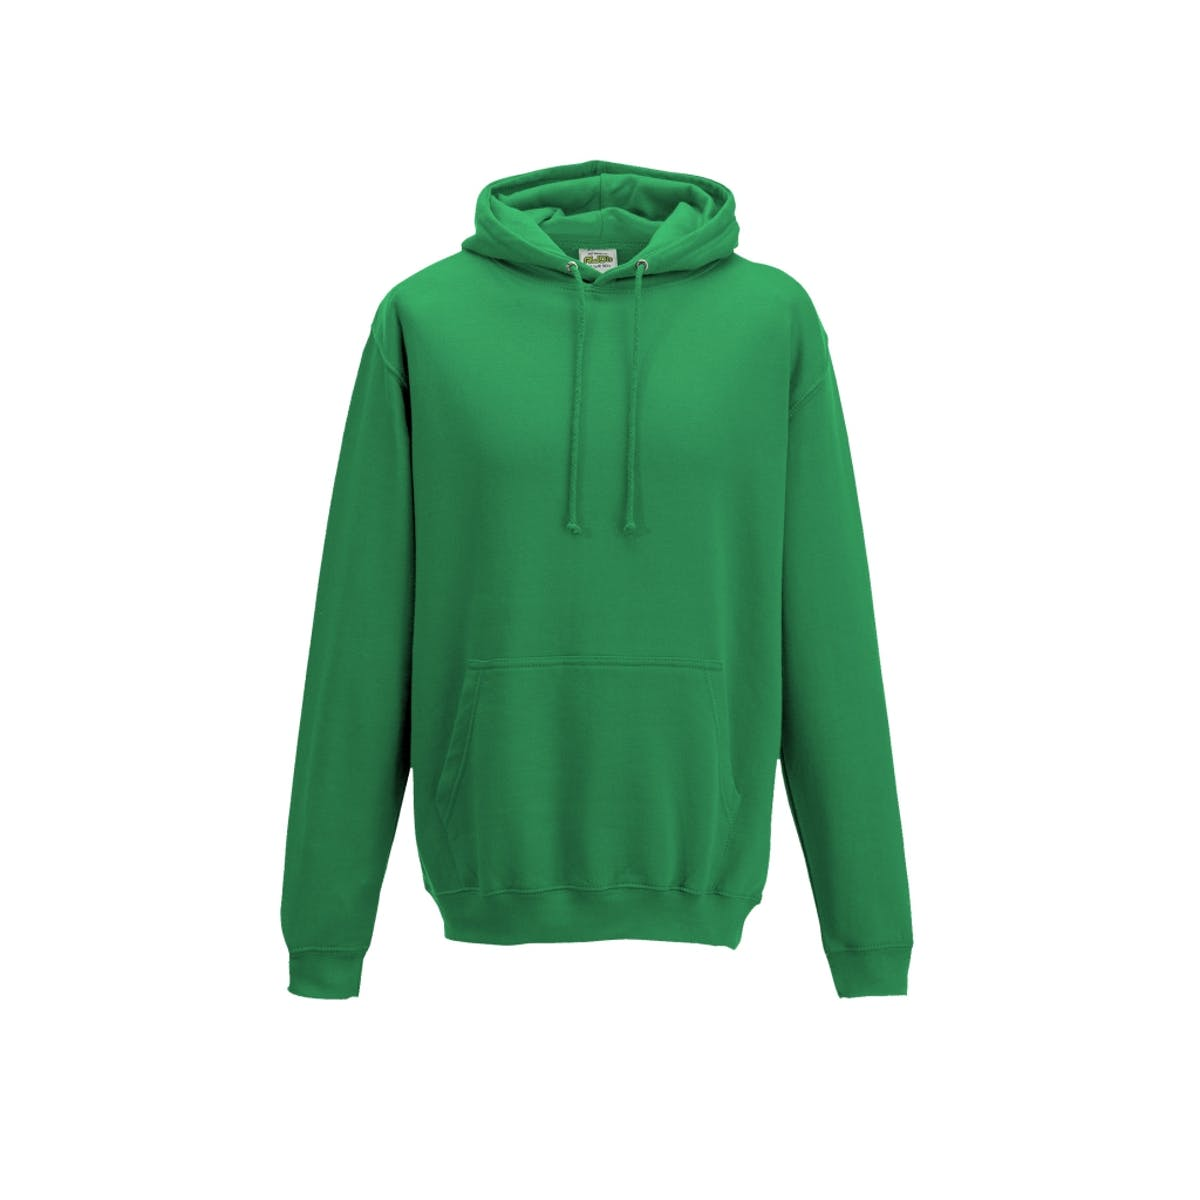 spring green college hoodies